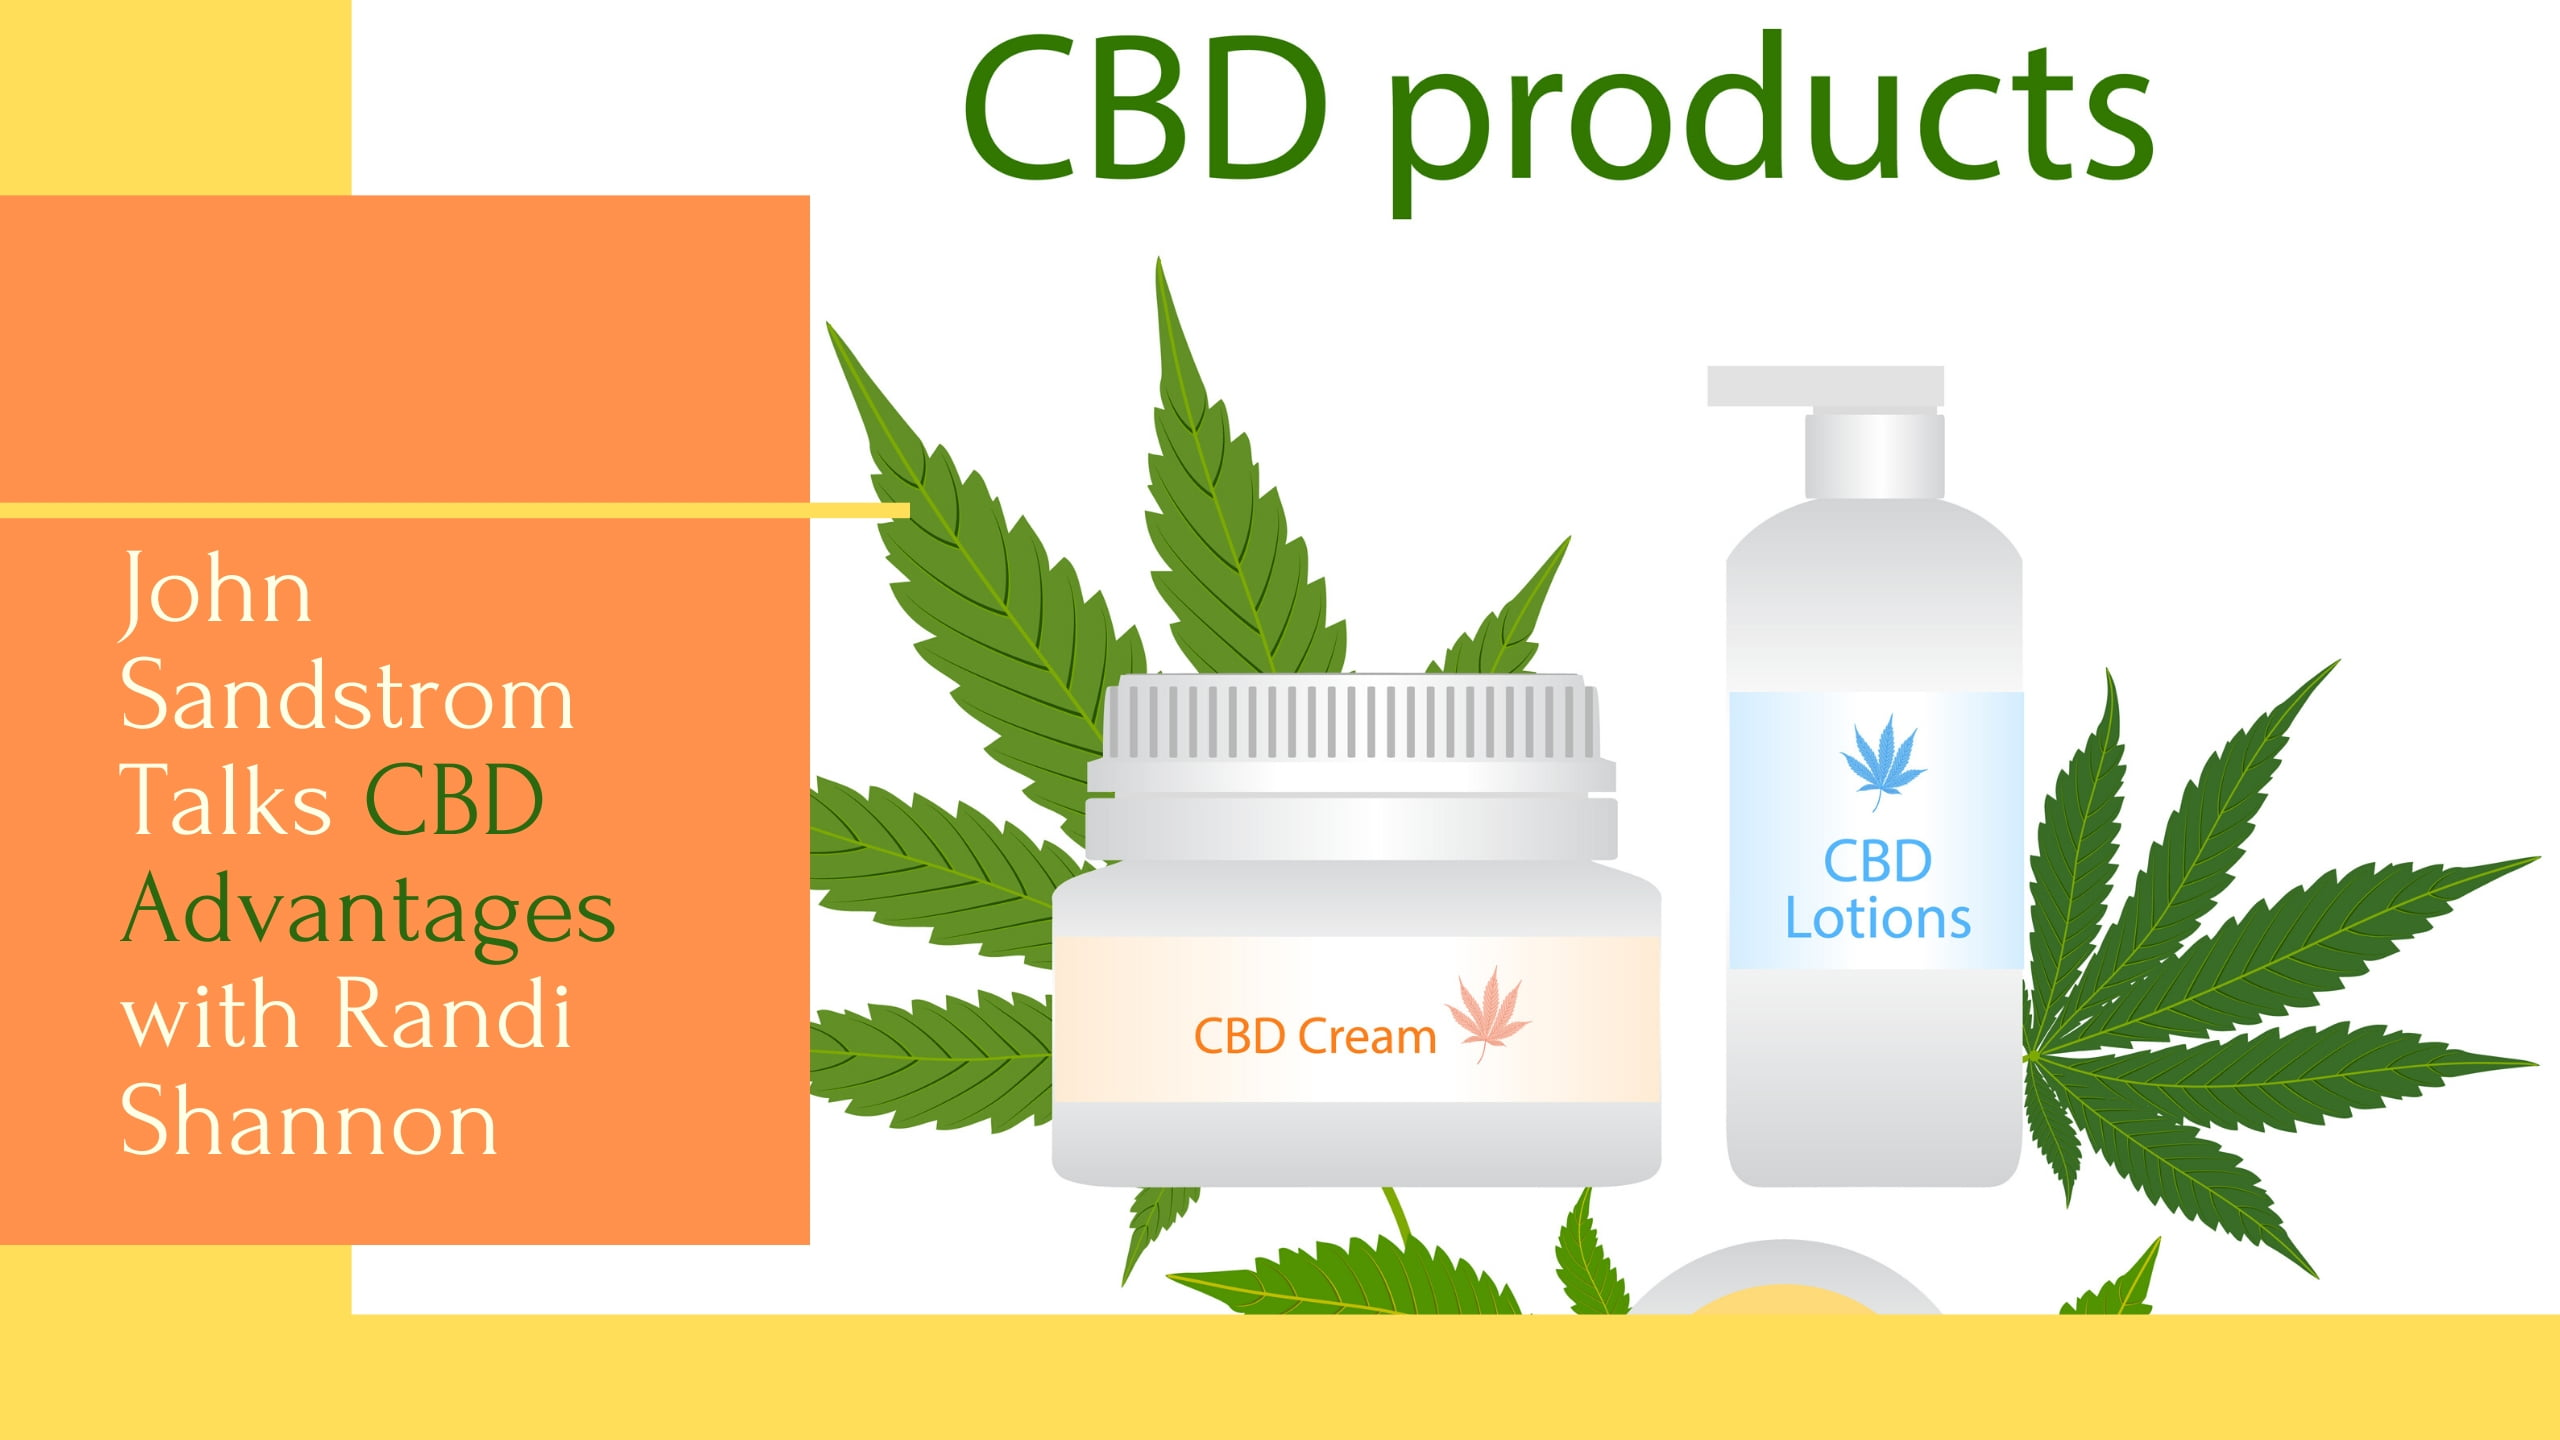 John Sandstrom Talks CBD Advantages with Randi Shannon